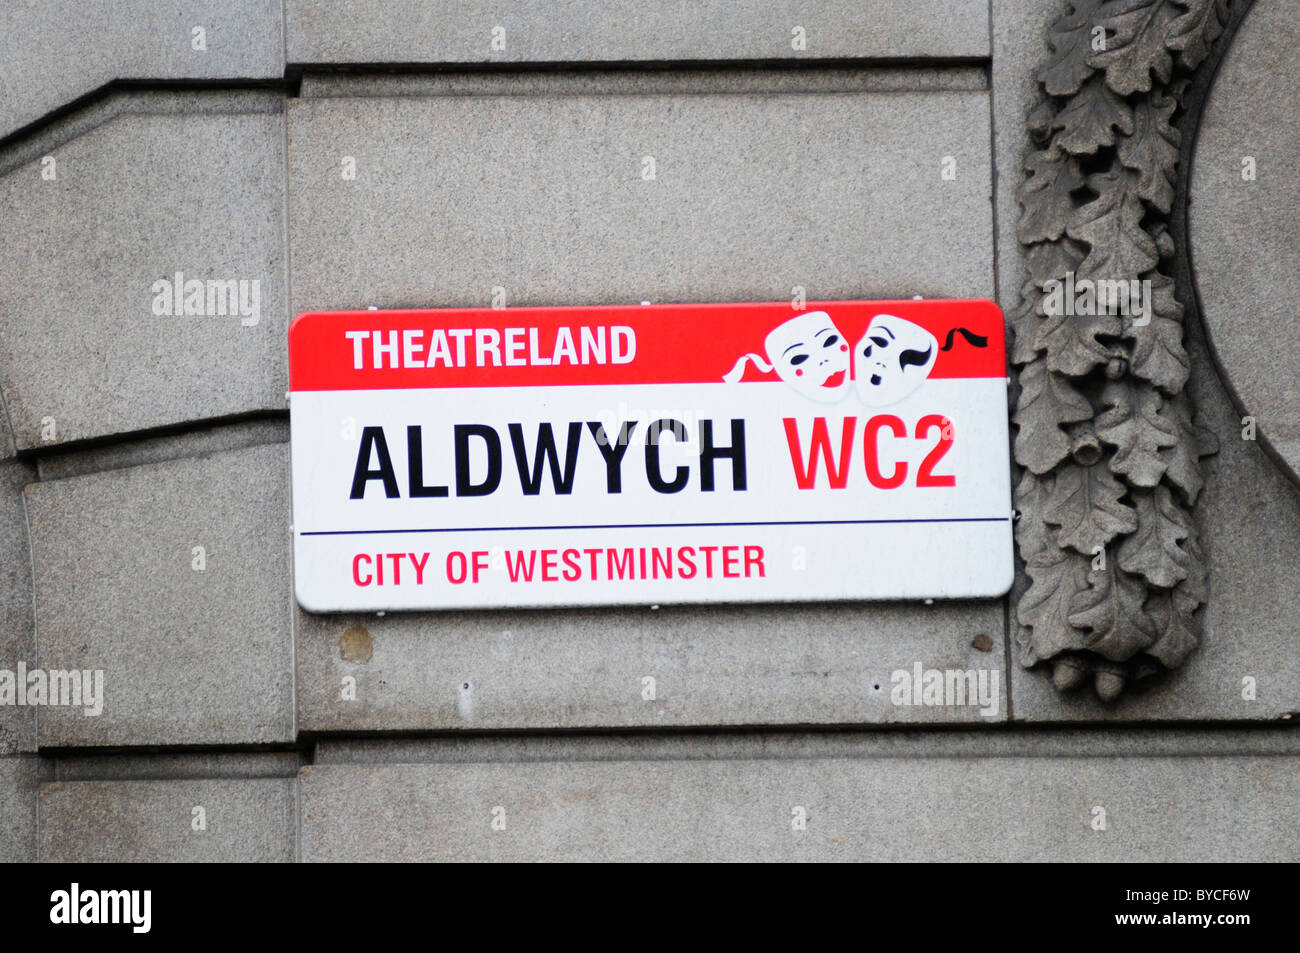 Aldwych Theatreland Street Sign, Aldwych, London, England, UK - Stock Image